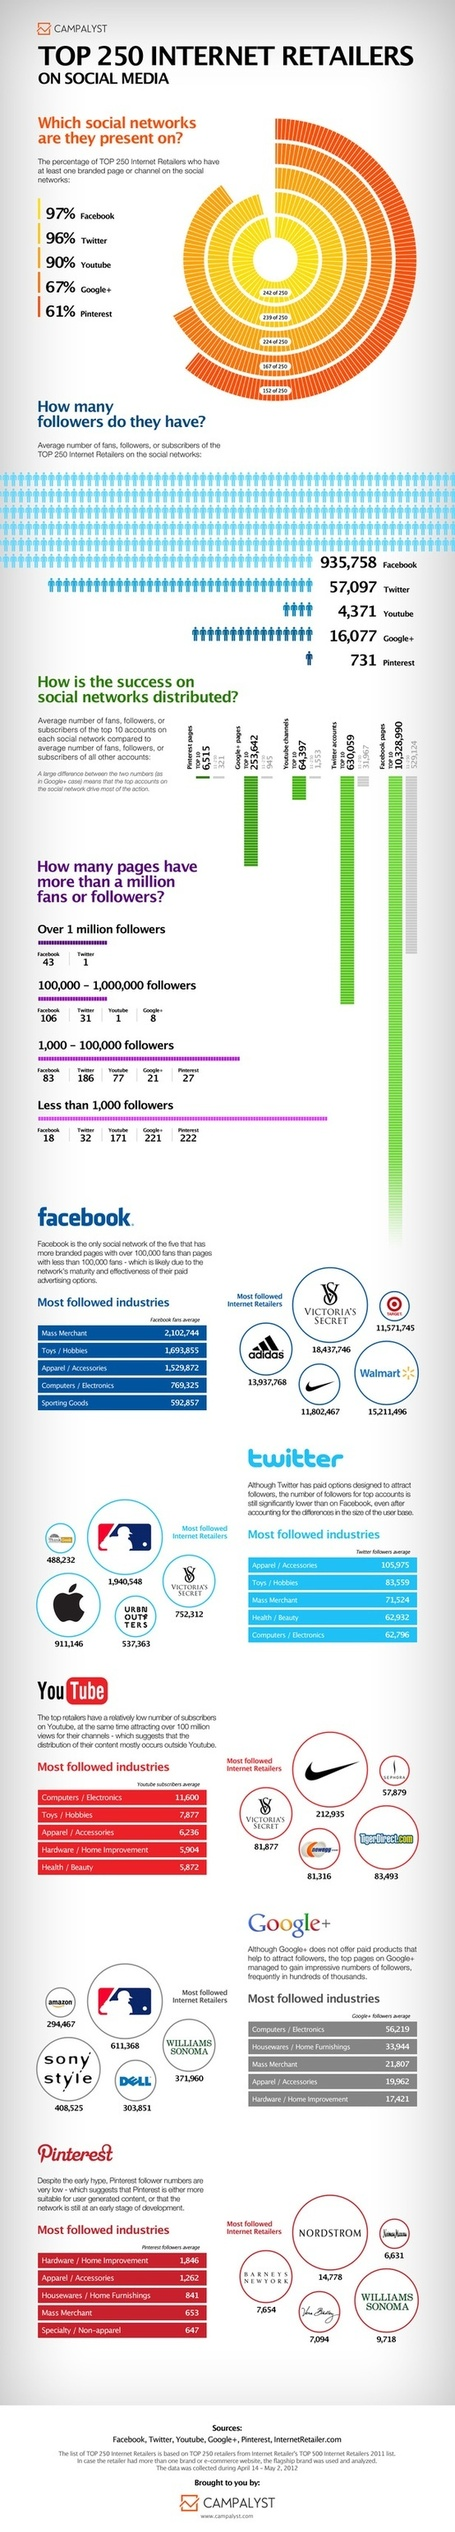 Top Social Internet Retailers [Infographic] | UpTempo Group: Social Media Scientists | Scoop.it